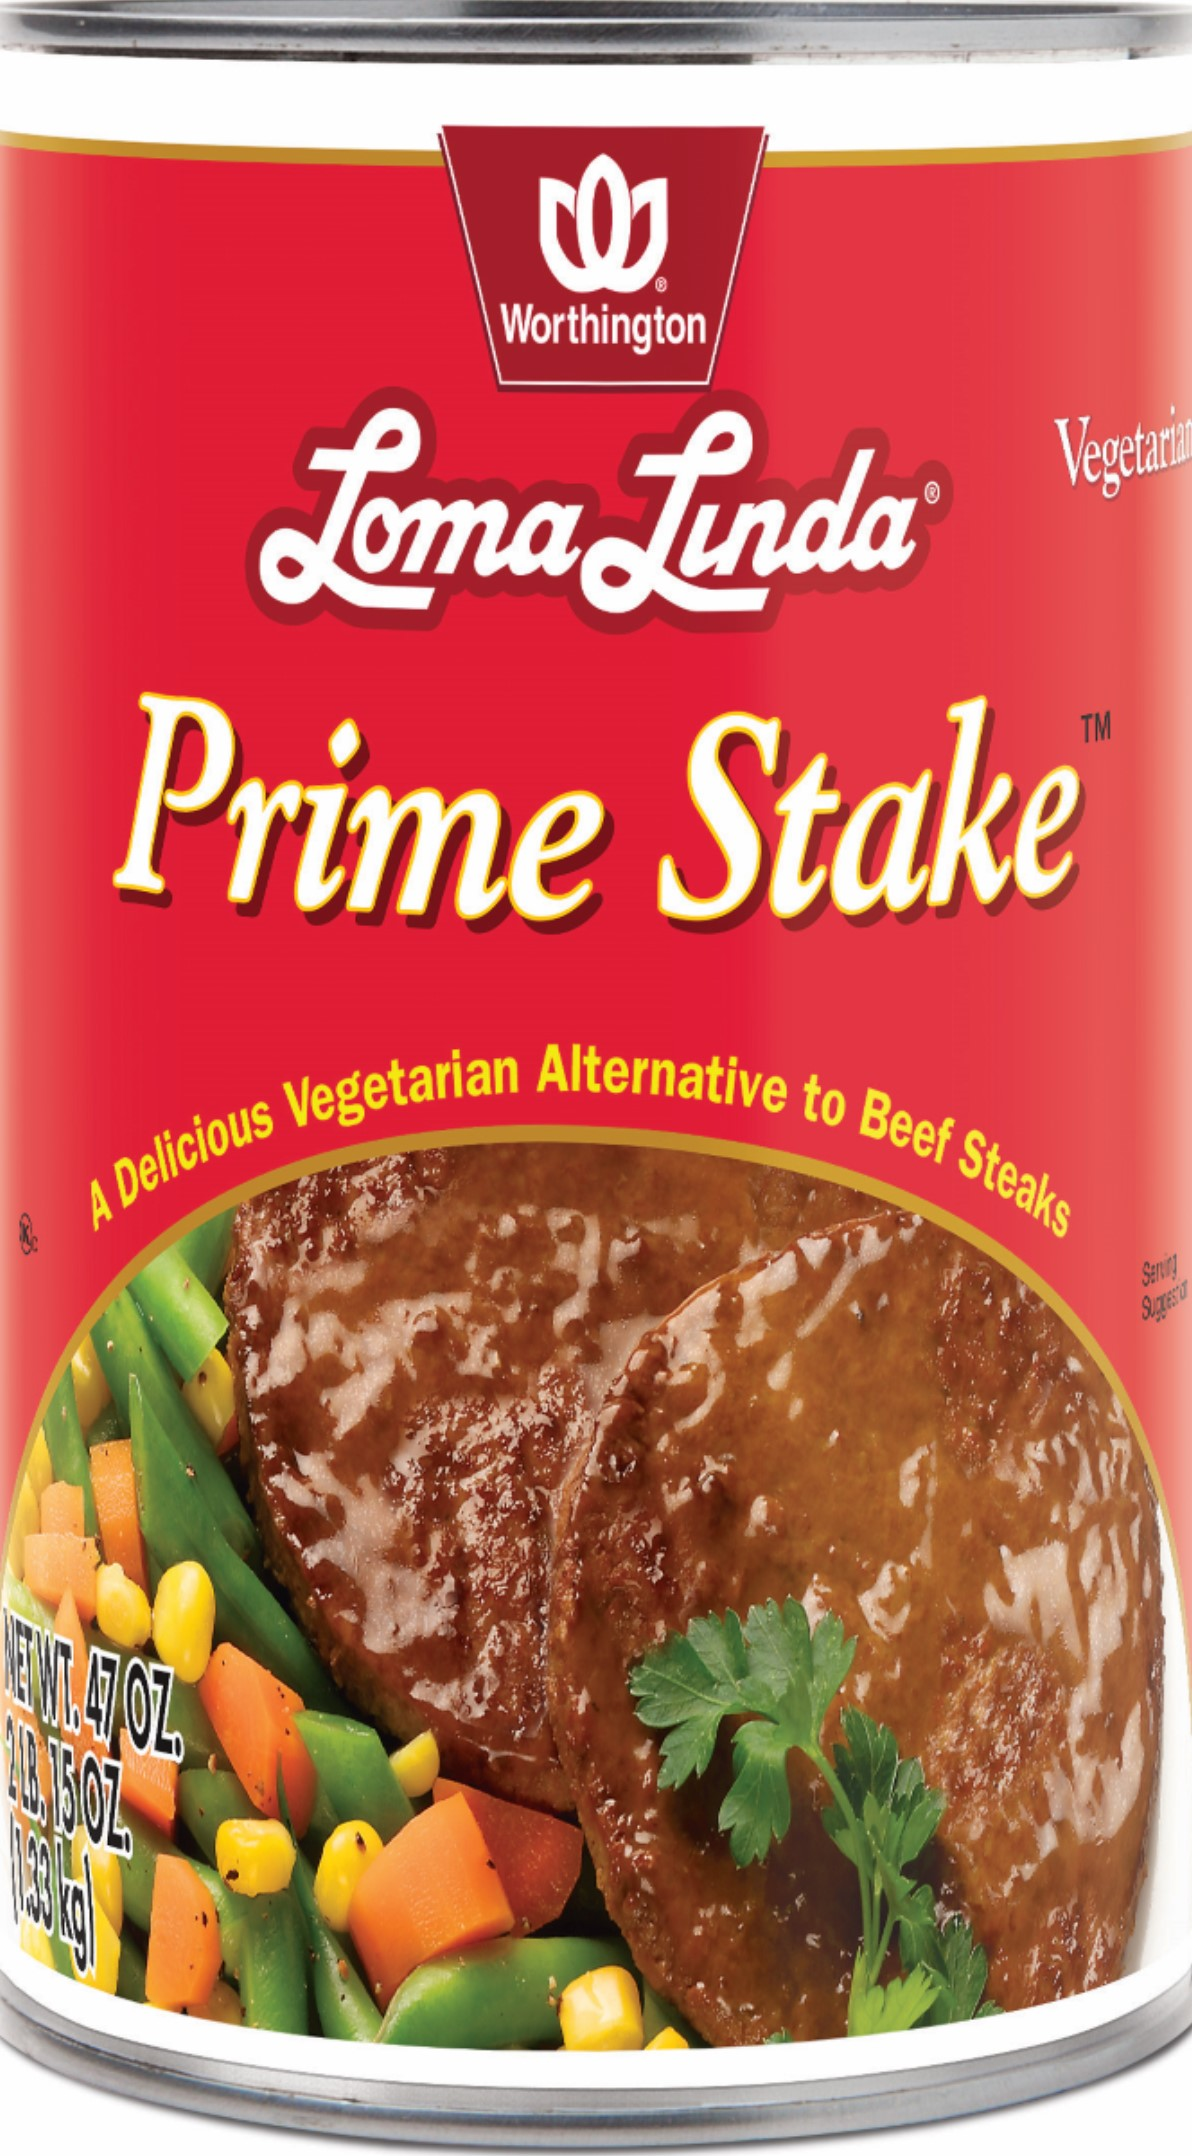 PRIME STAKES FAMILY SIZE,WORTHINGTON,00069